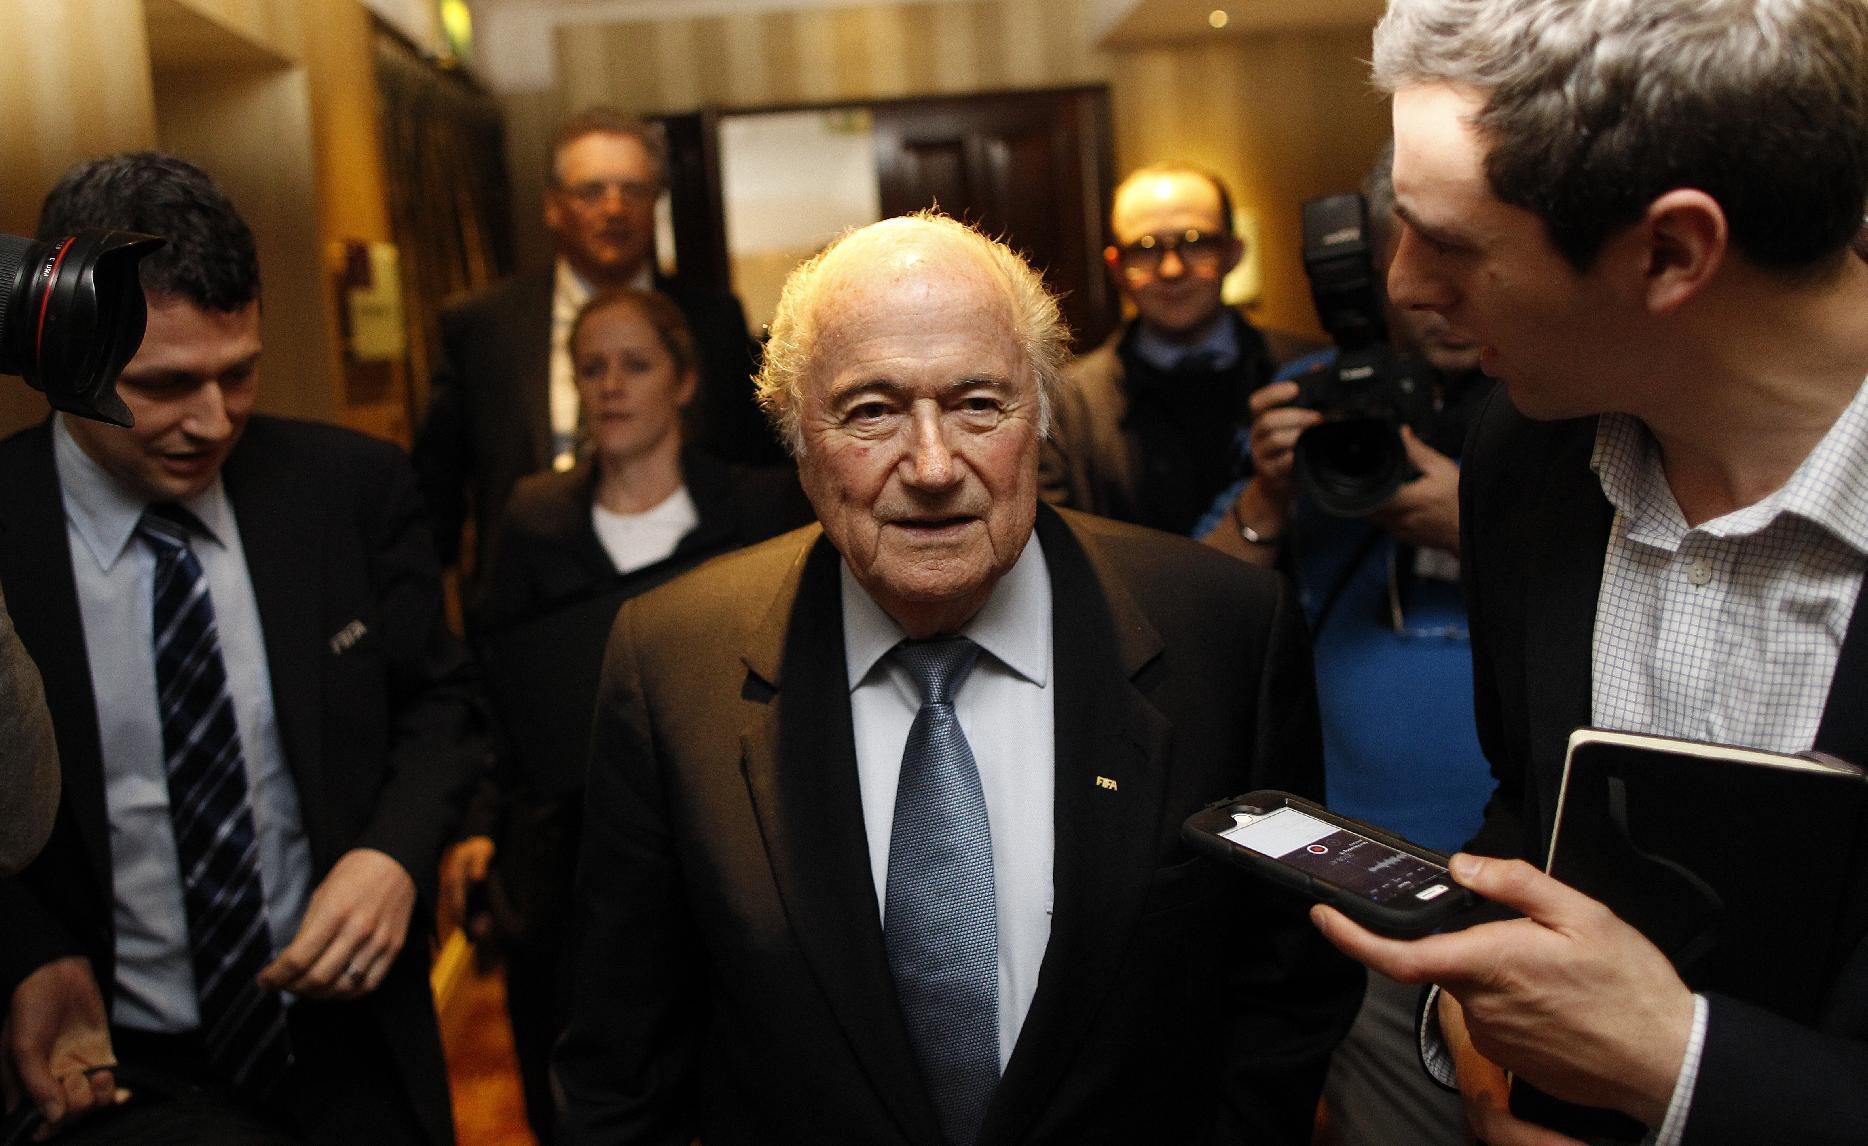 Dutch candidate for FIFA presidency wants more transparency